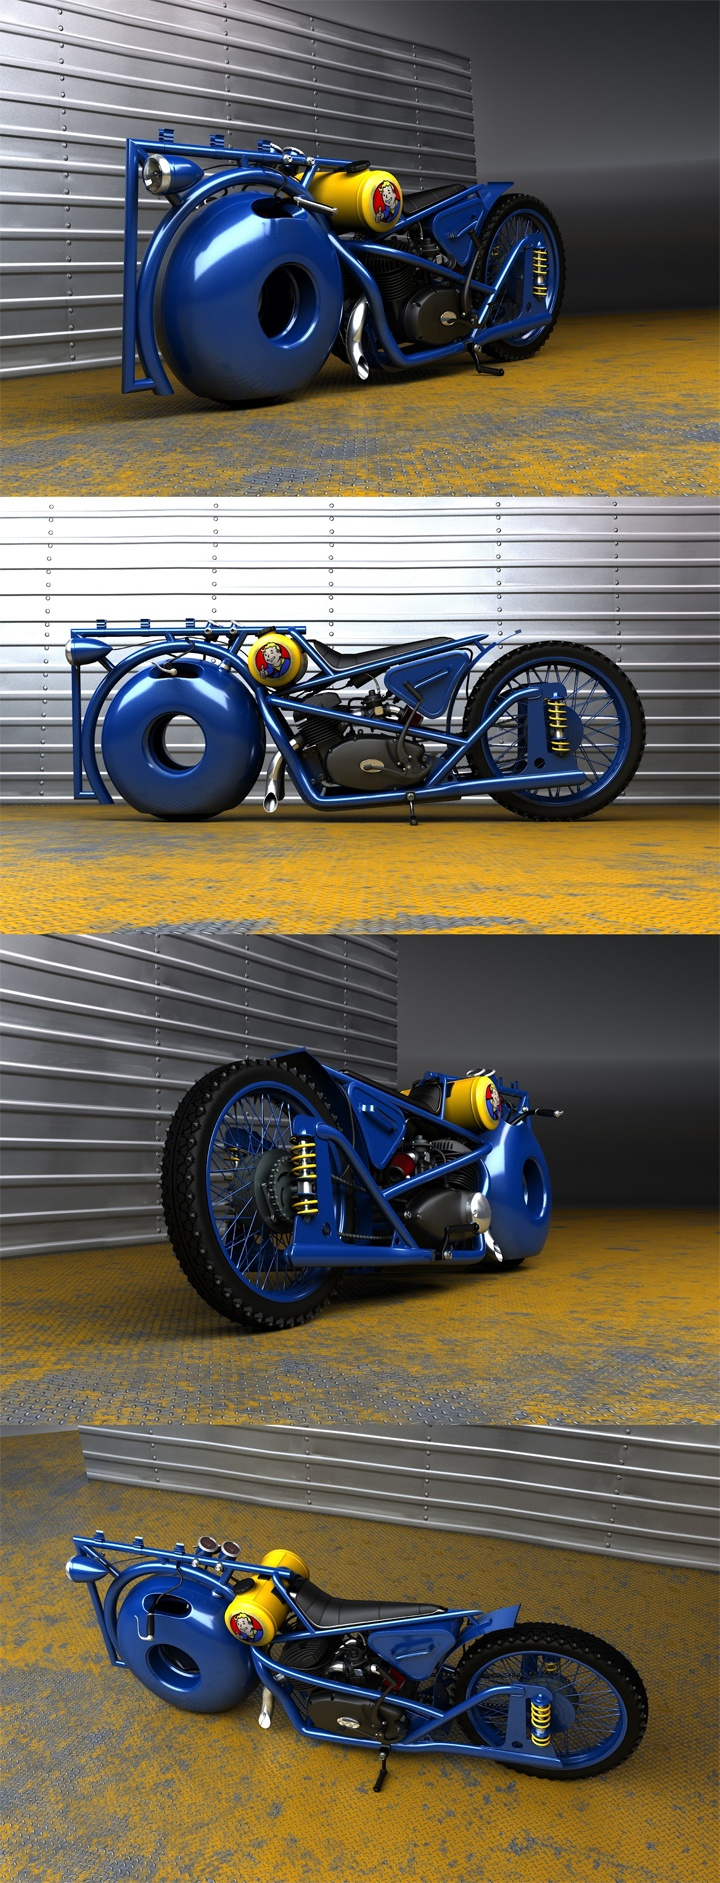 Izh fallout blue concept motorcycle original from http solifdesign blogspot